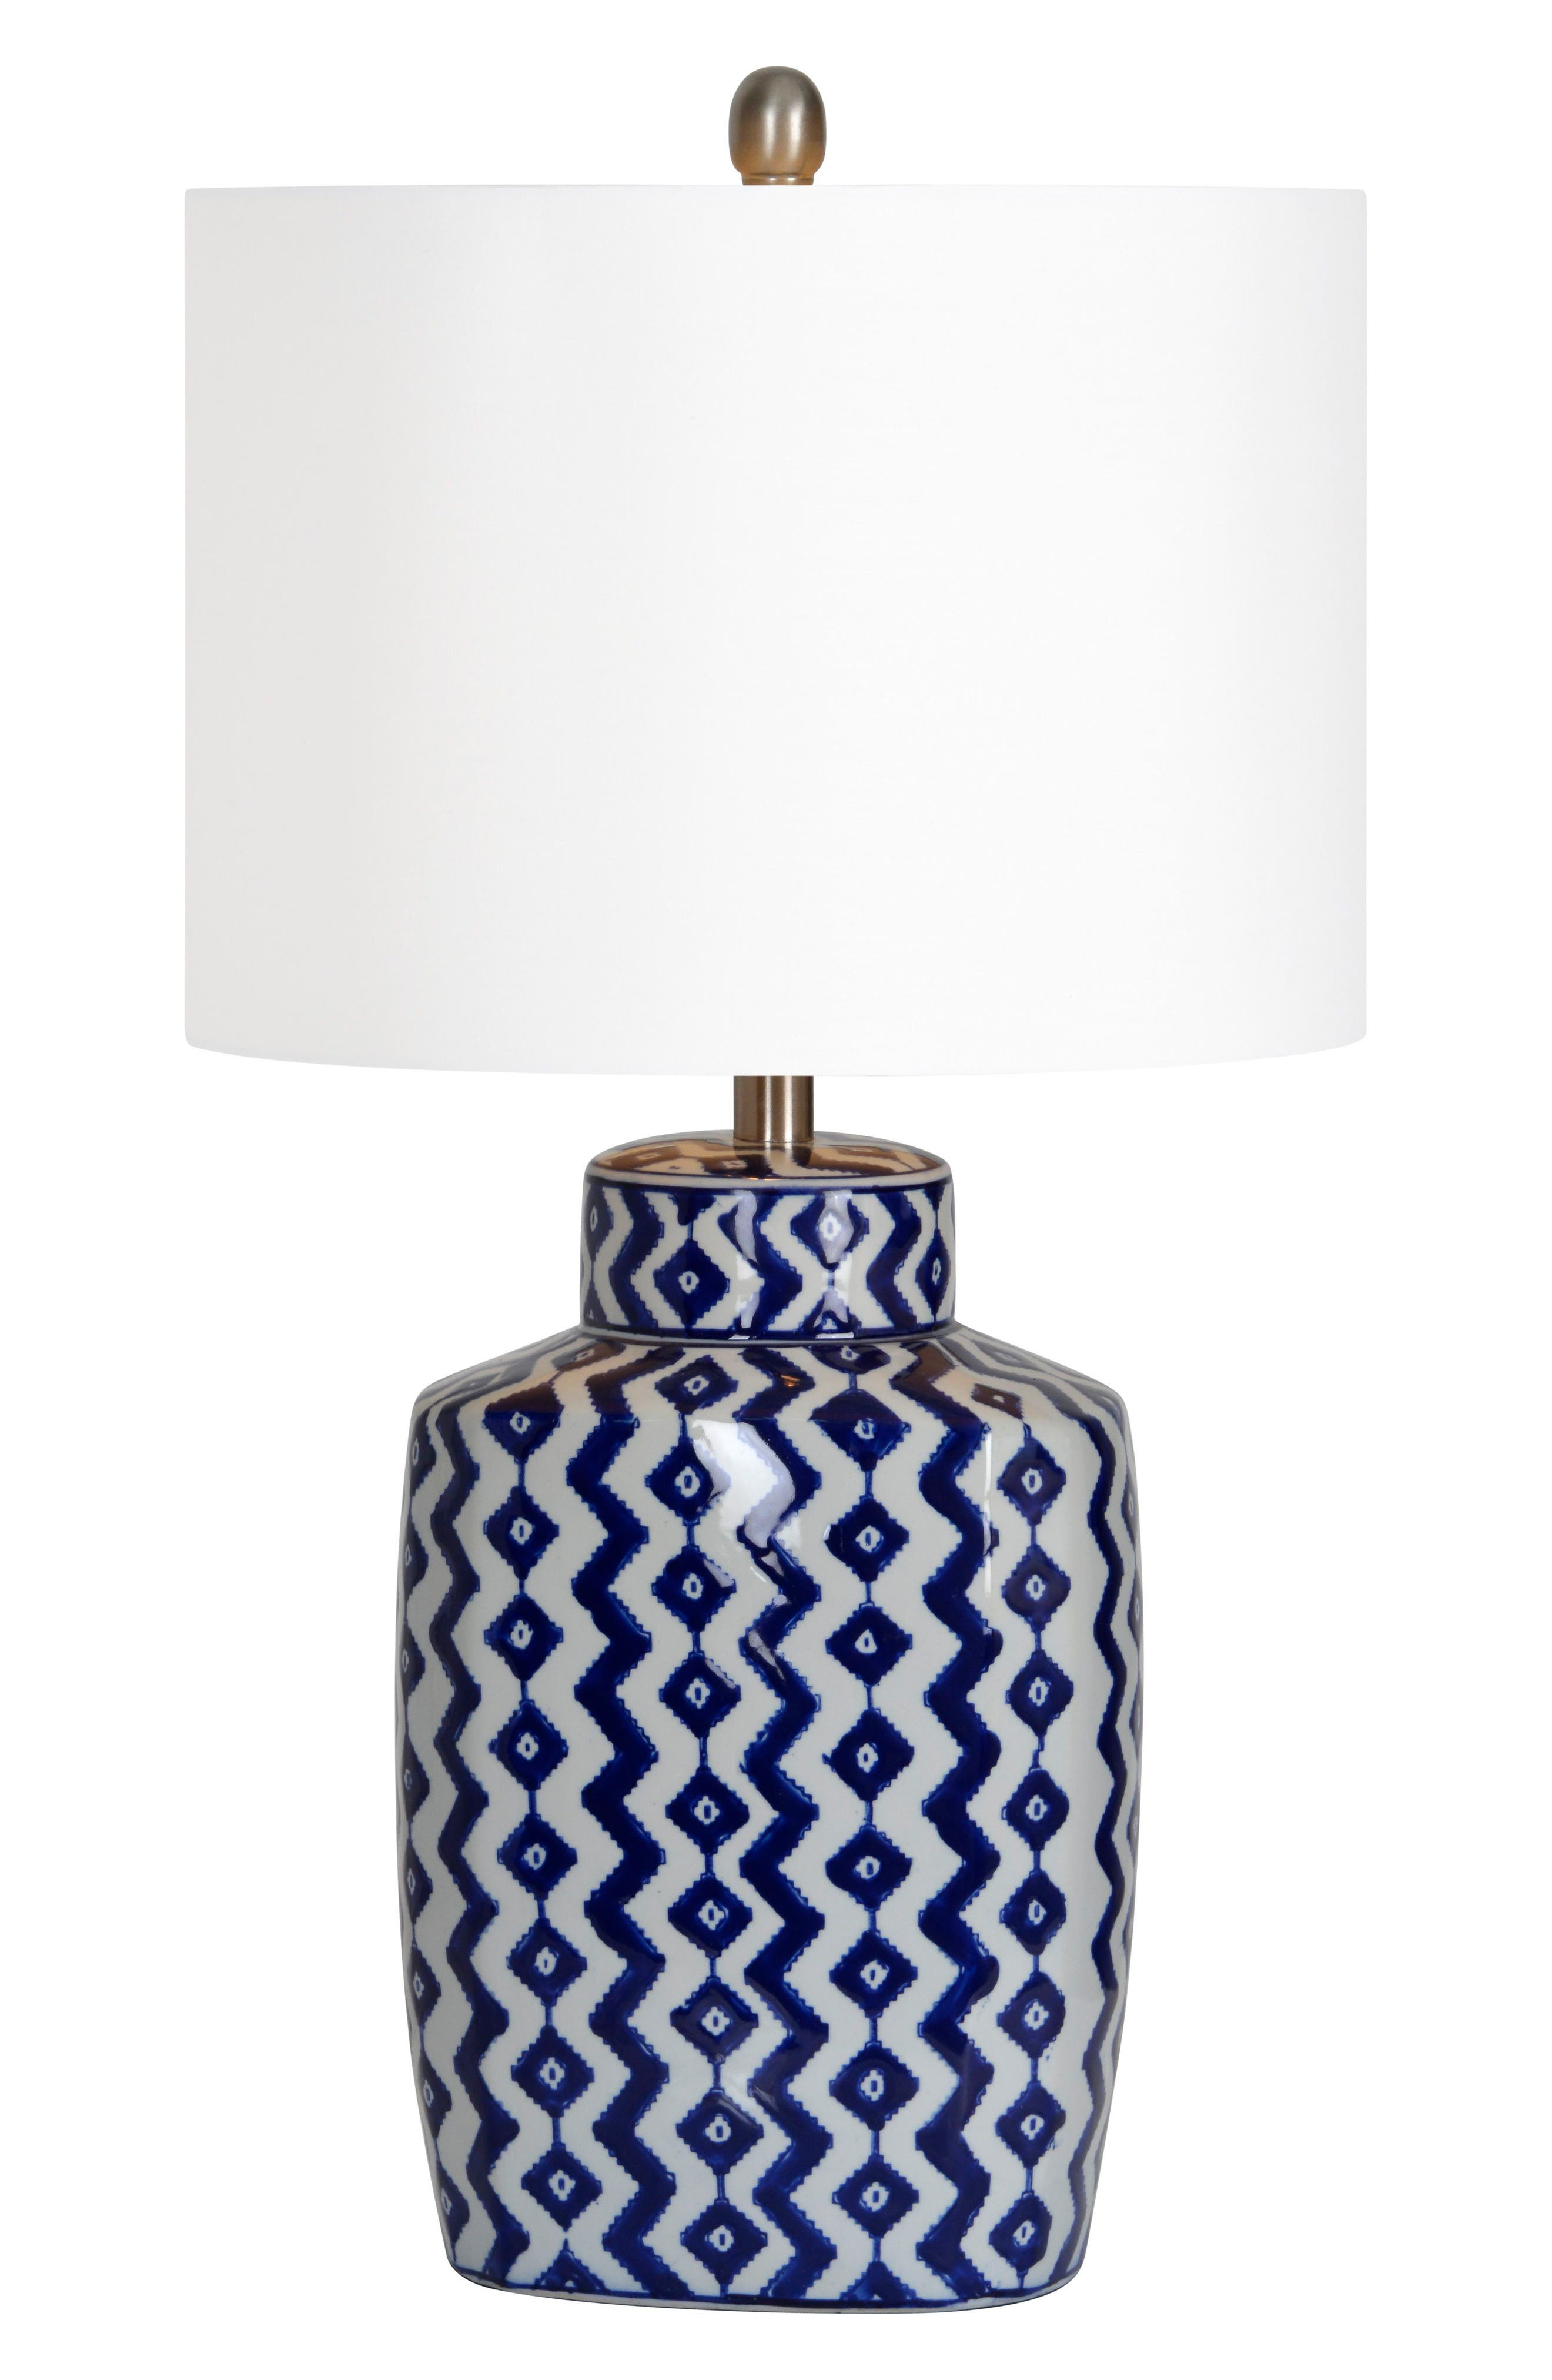 Beryl Table Lamp,                         Main,                         color, BLUE/ WHITE CHEVRON/ NICKEL